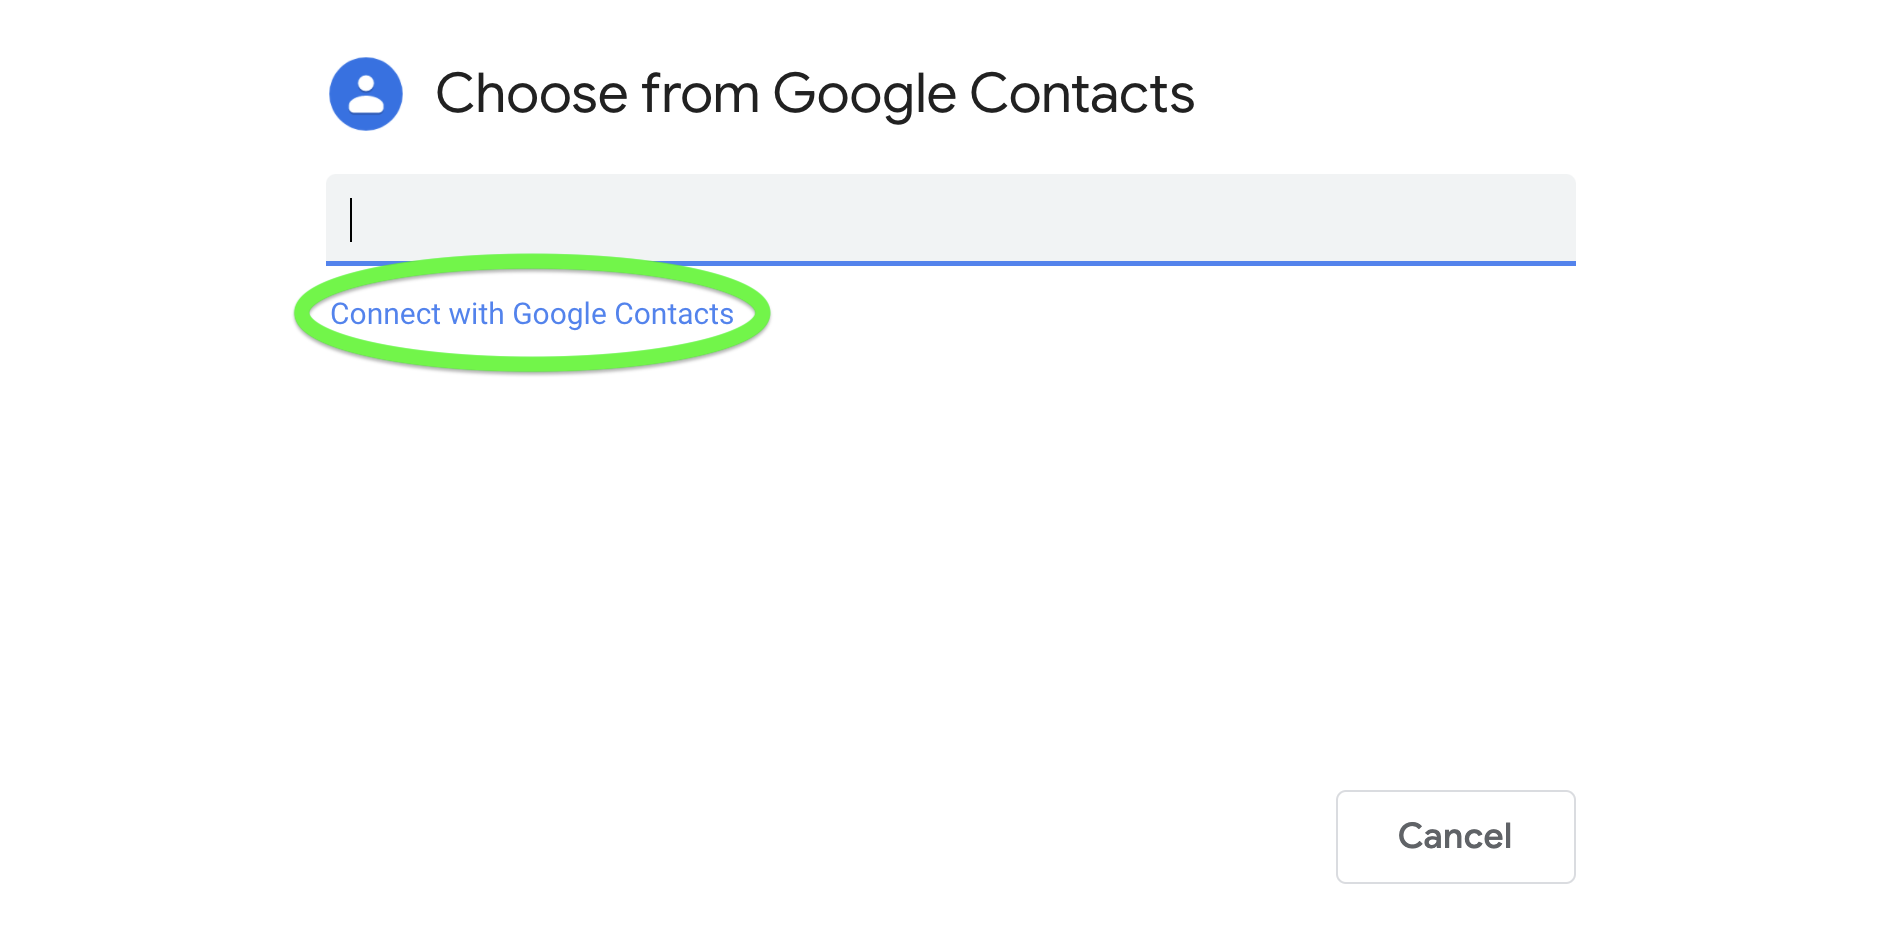 Choose from Google Contacts window